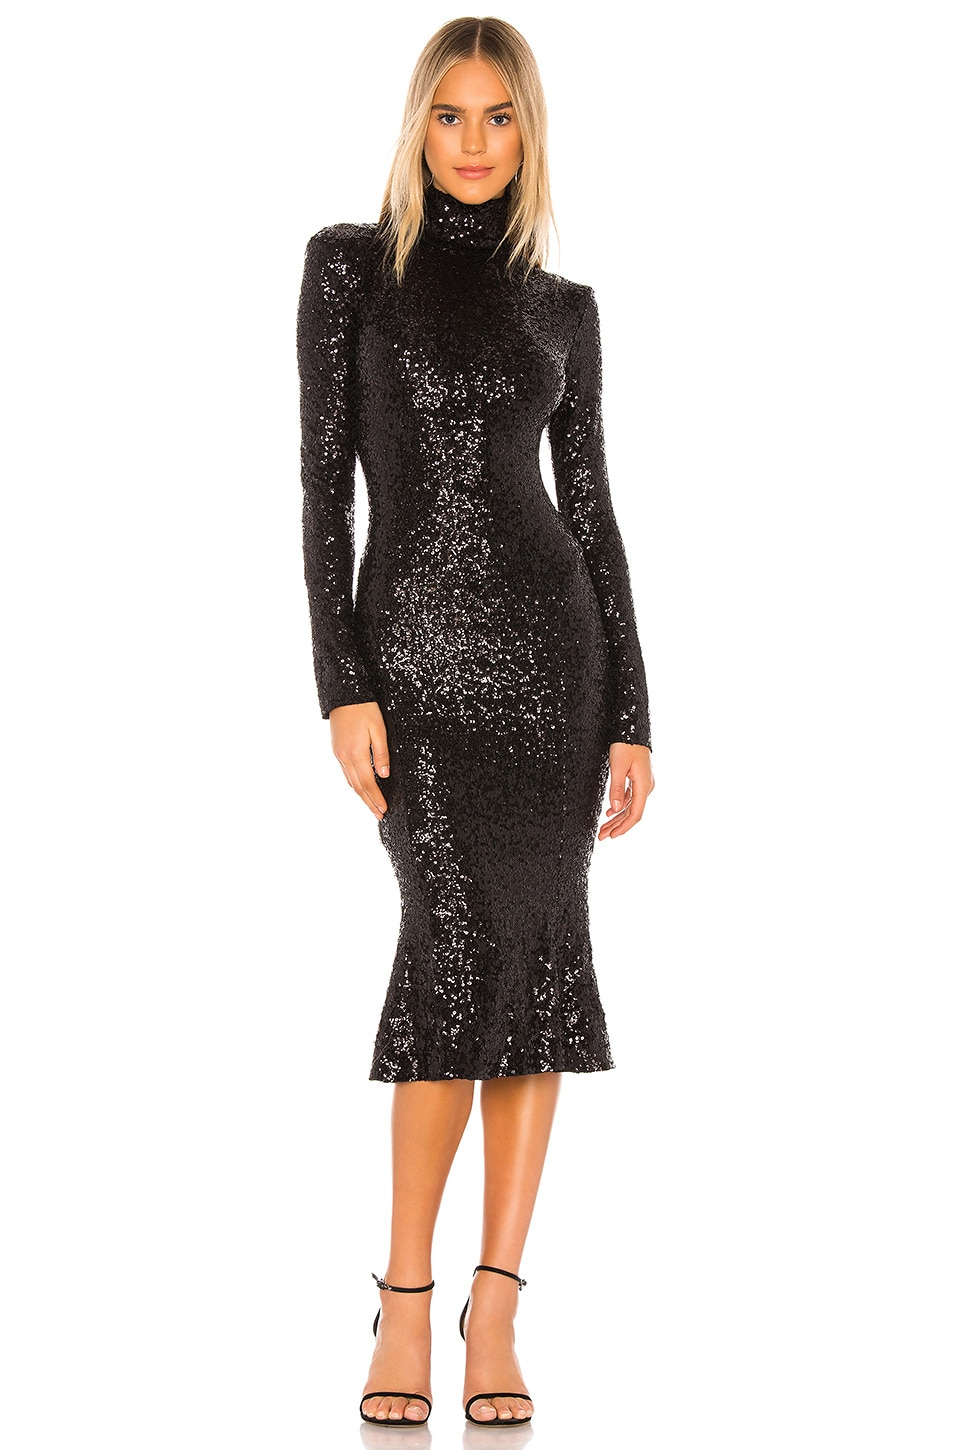 Norma Kamali Sequin Fishtail Dress in Black